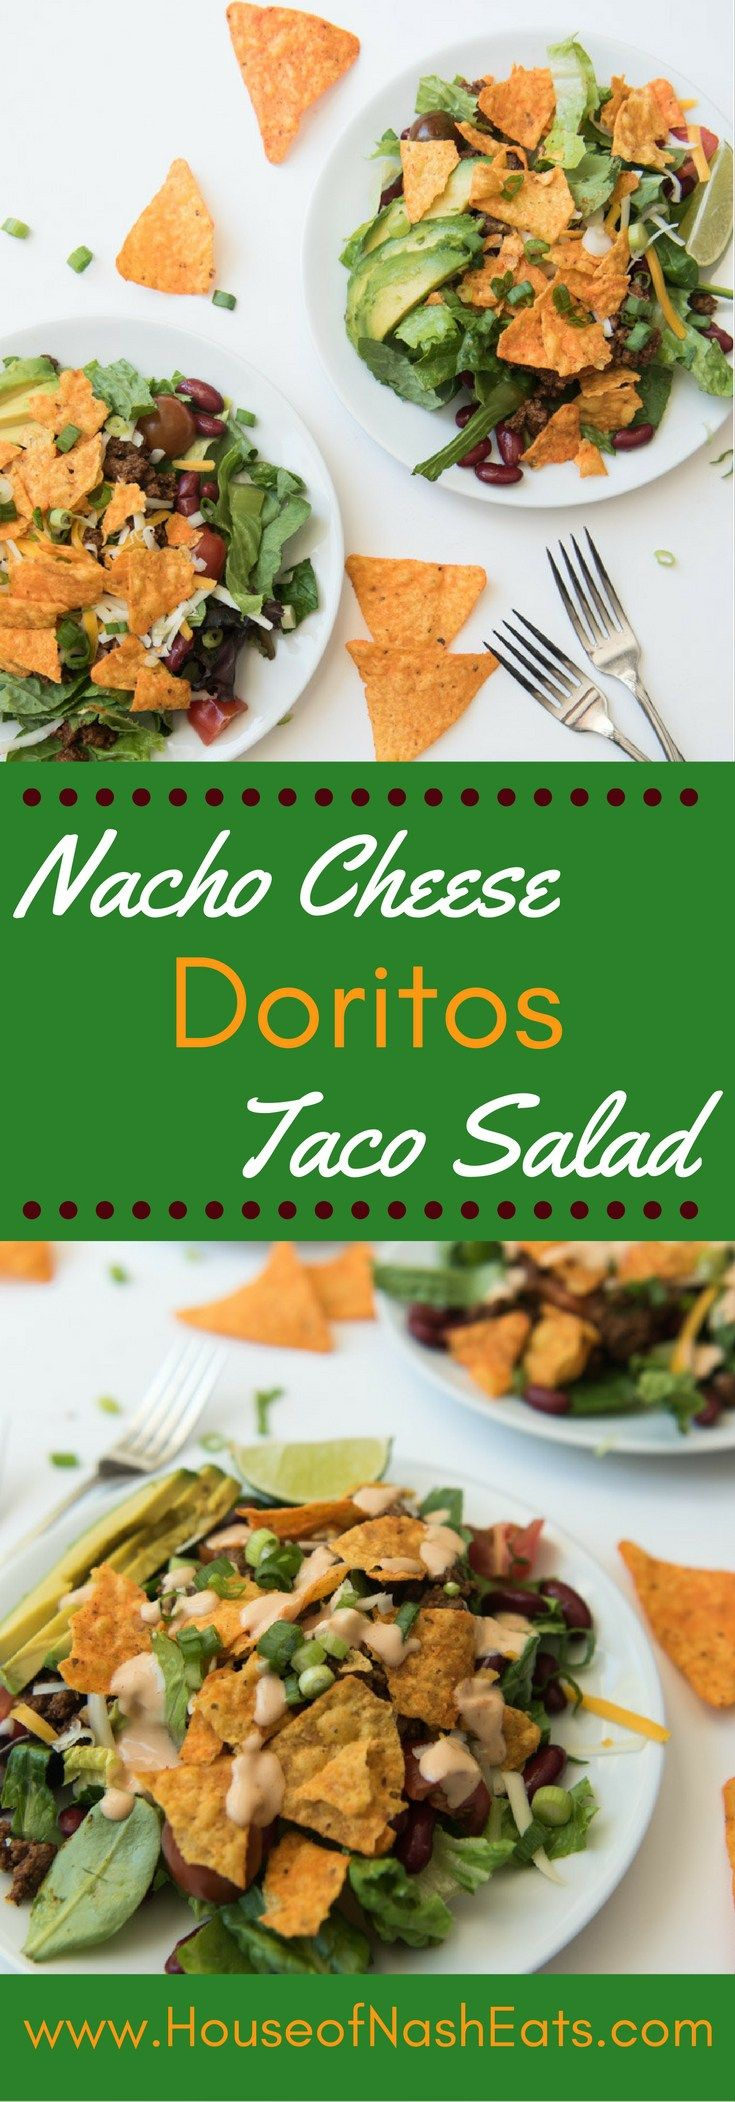 This crazy delicious Tex-Mex Doritos Taco Salad is loaded with taco meat, kidney beans, cheese, avocado, tomatoes and Nacho Cheese Doritos.…